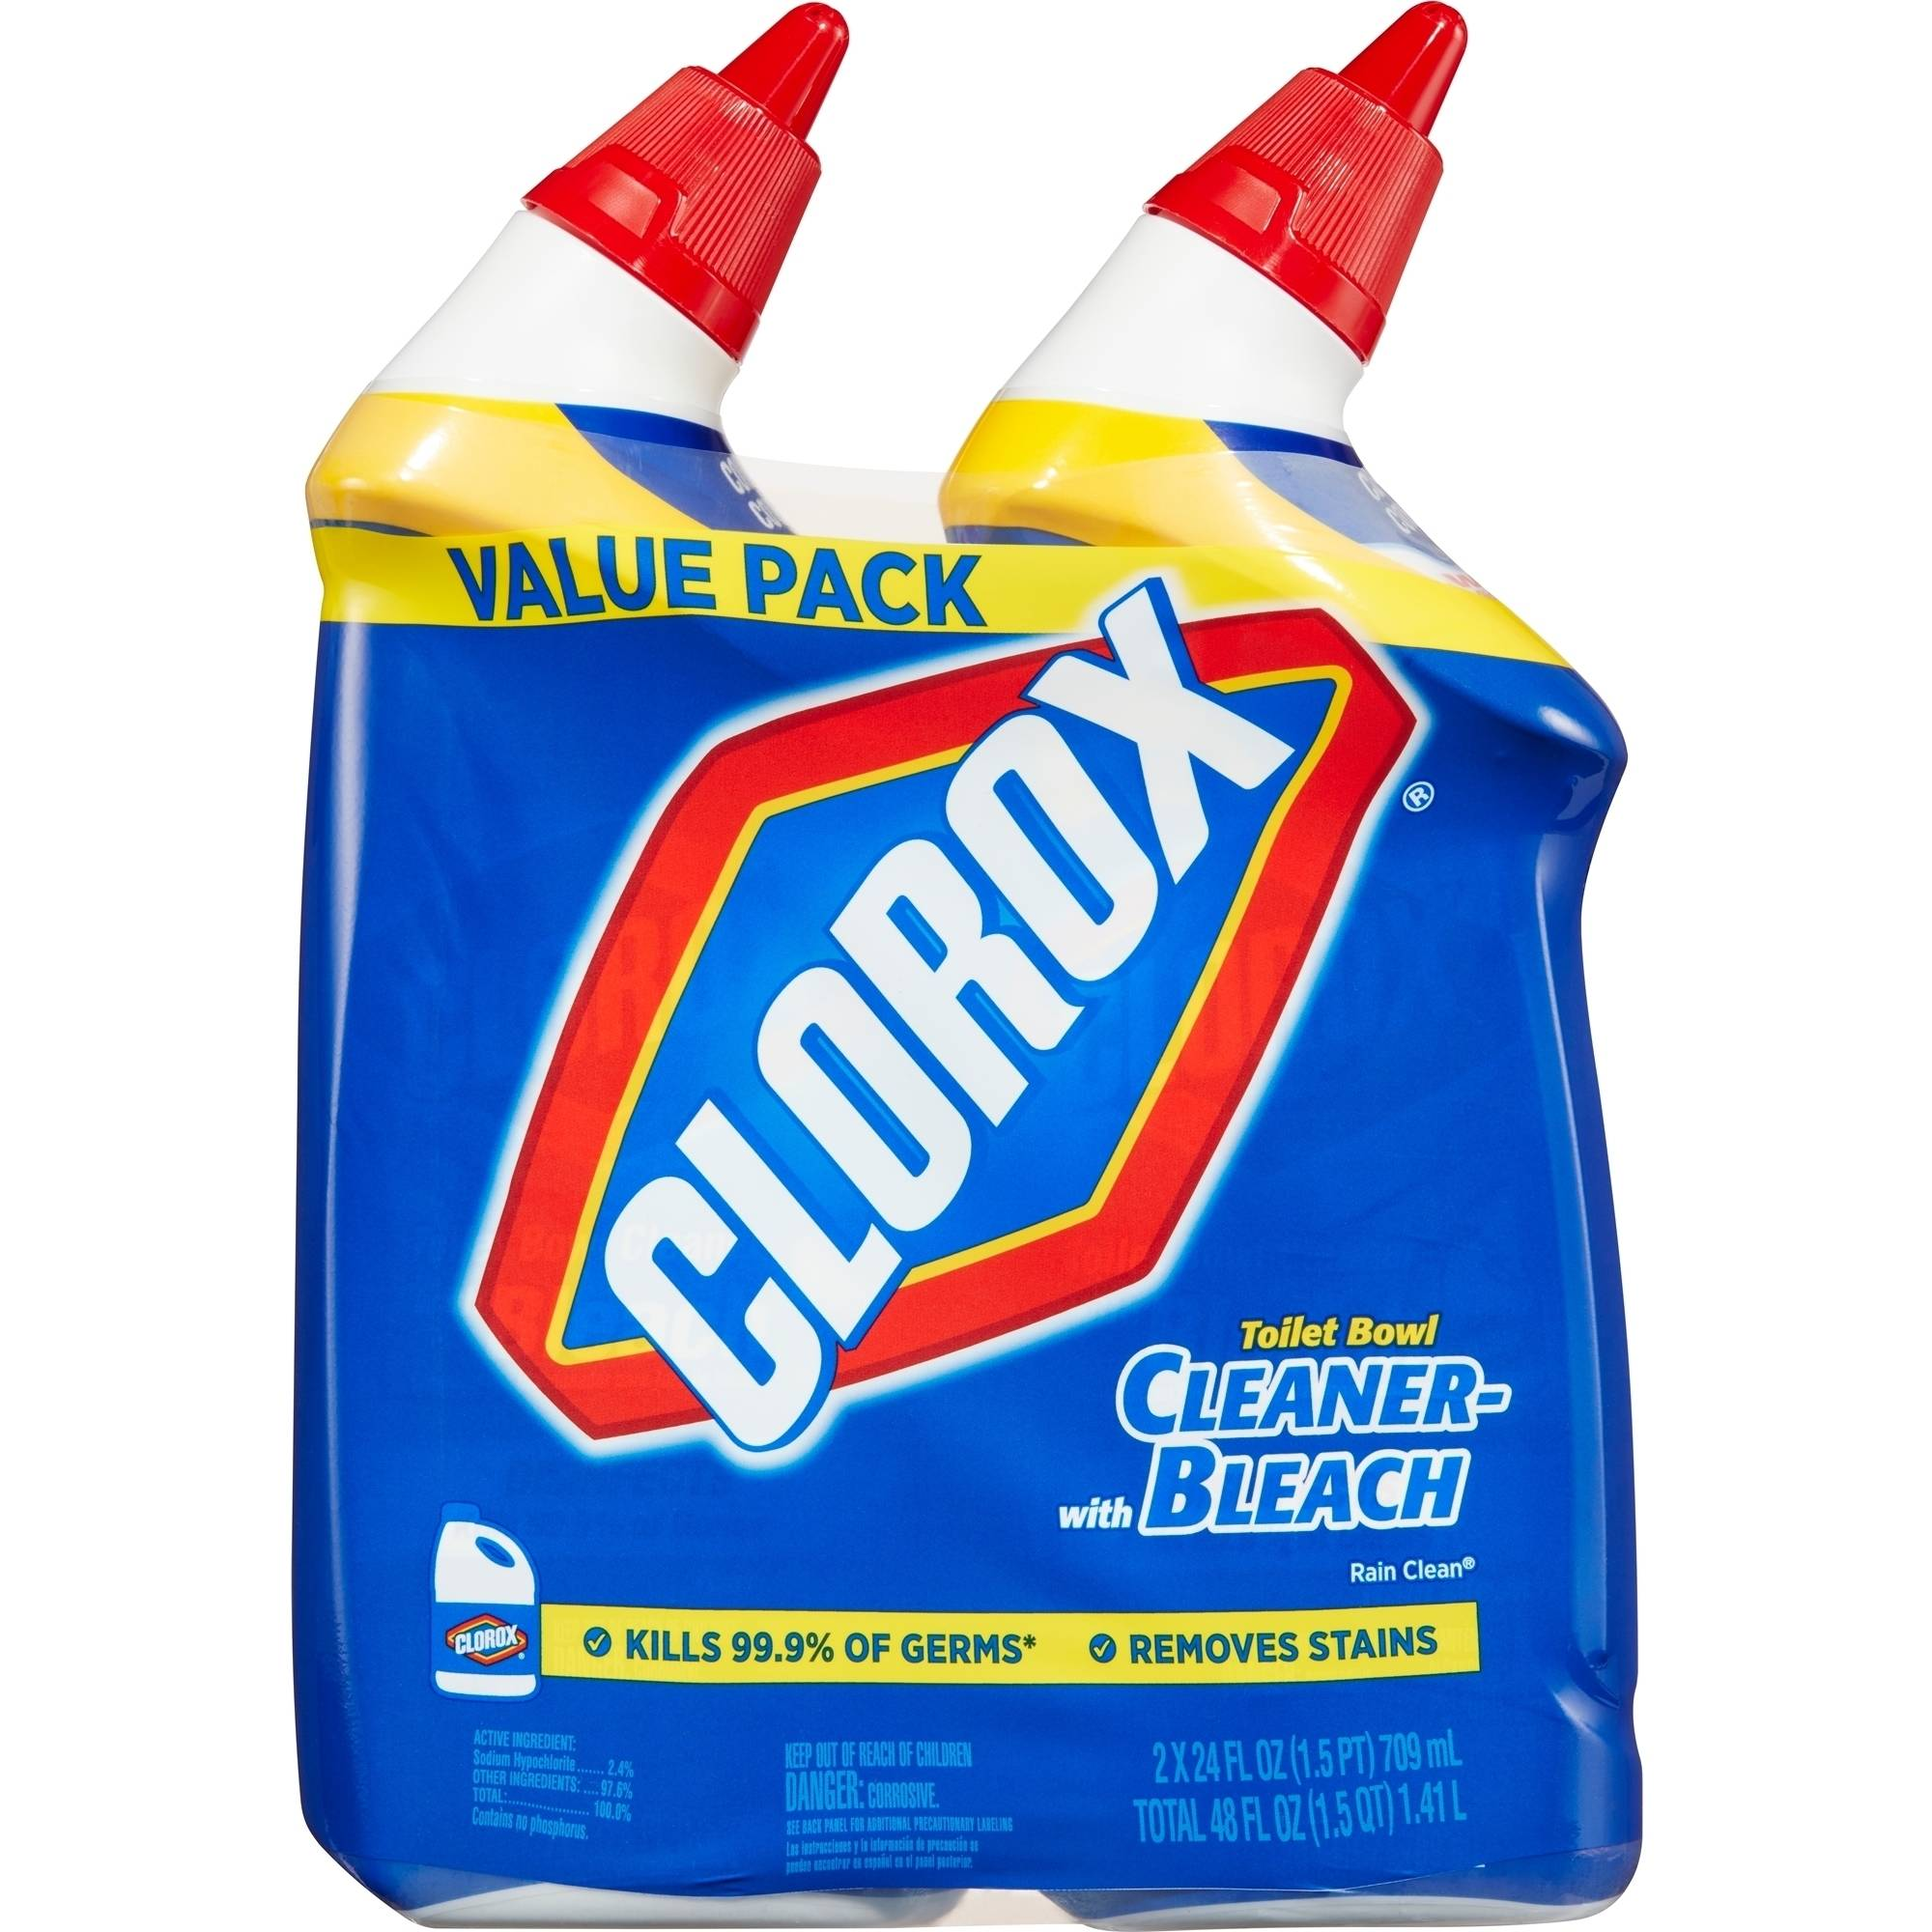 Clorox Toilet Bowl Cleaner, Rain Clean, 24 Ounces, 2 Pack